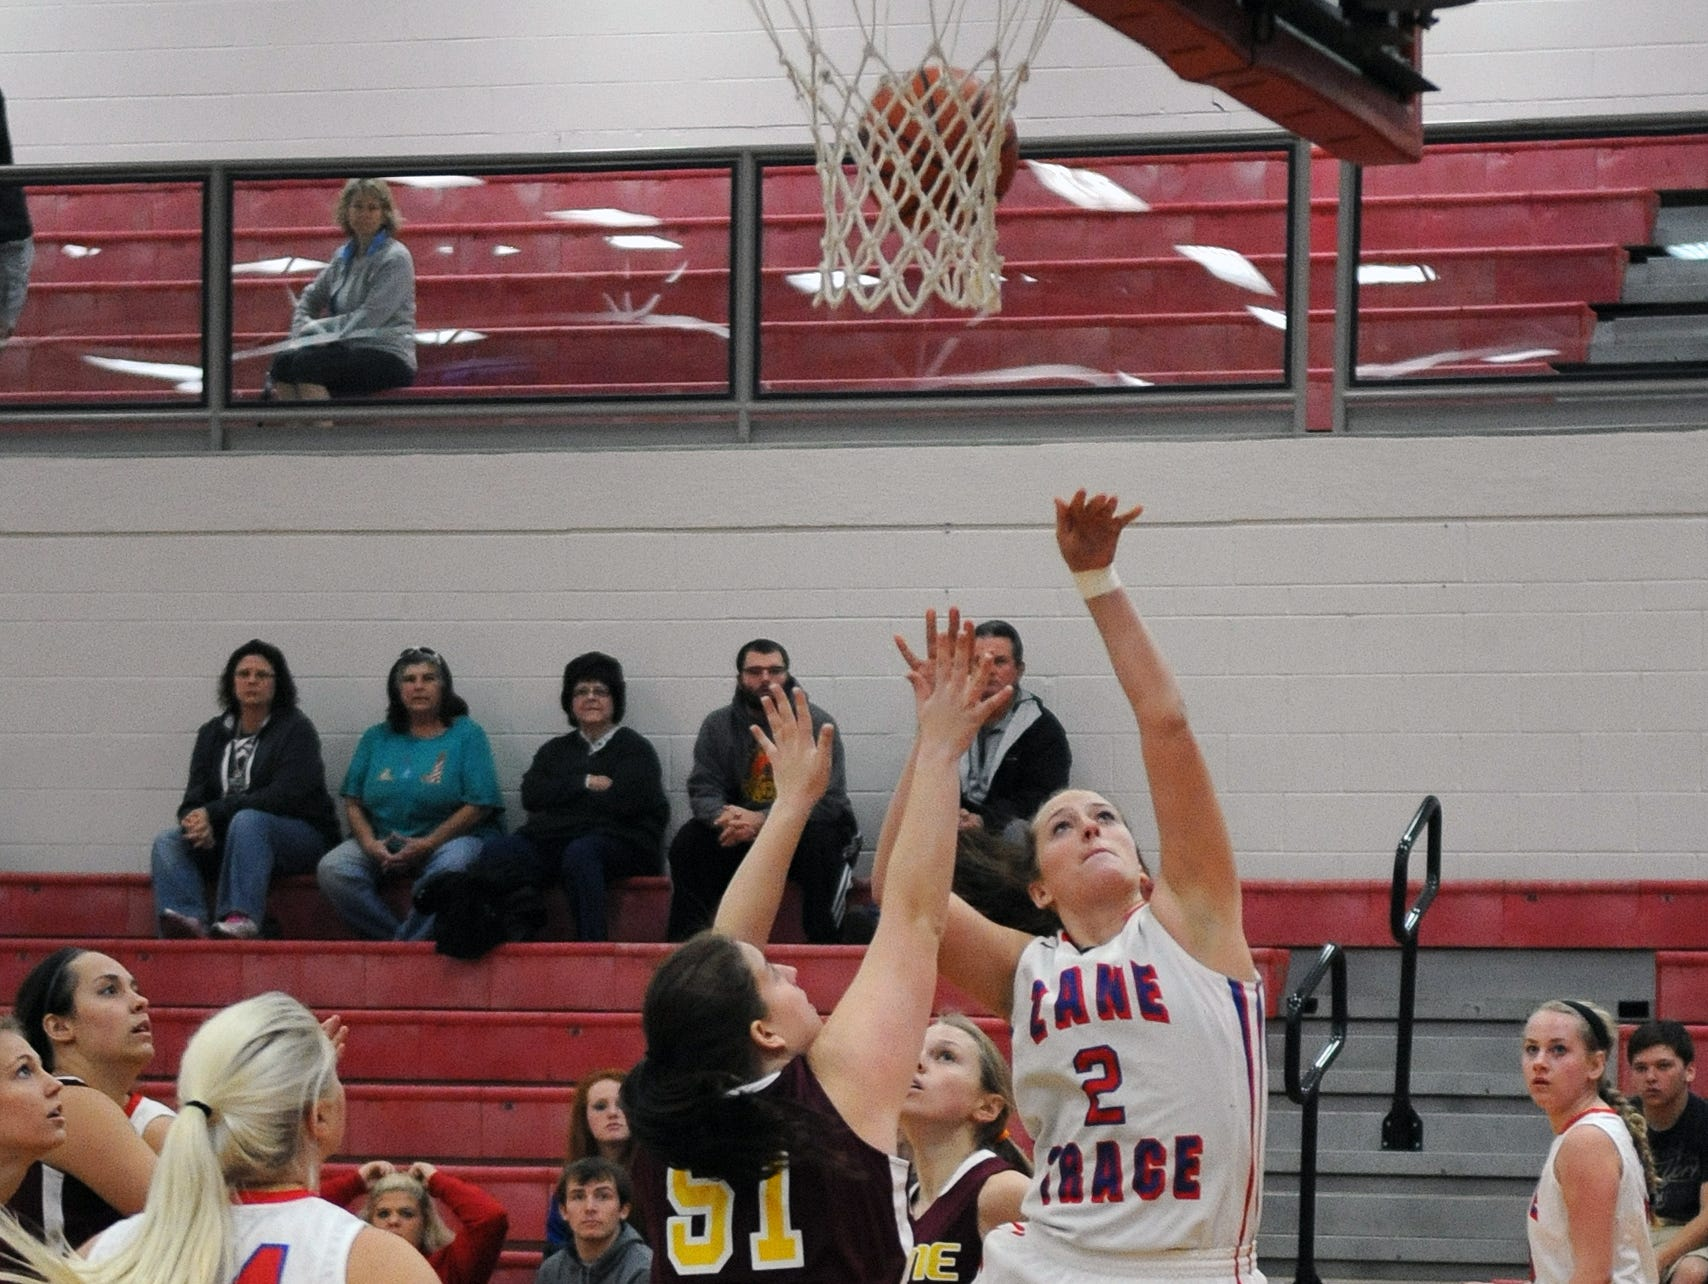 Zane Trace's Kaitlyn Unger takes a shot against Berne Union Friday at Zane Trace High School.